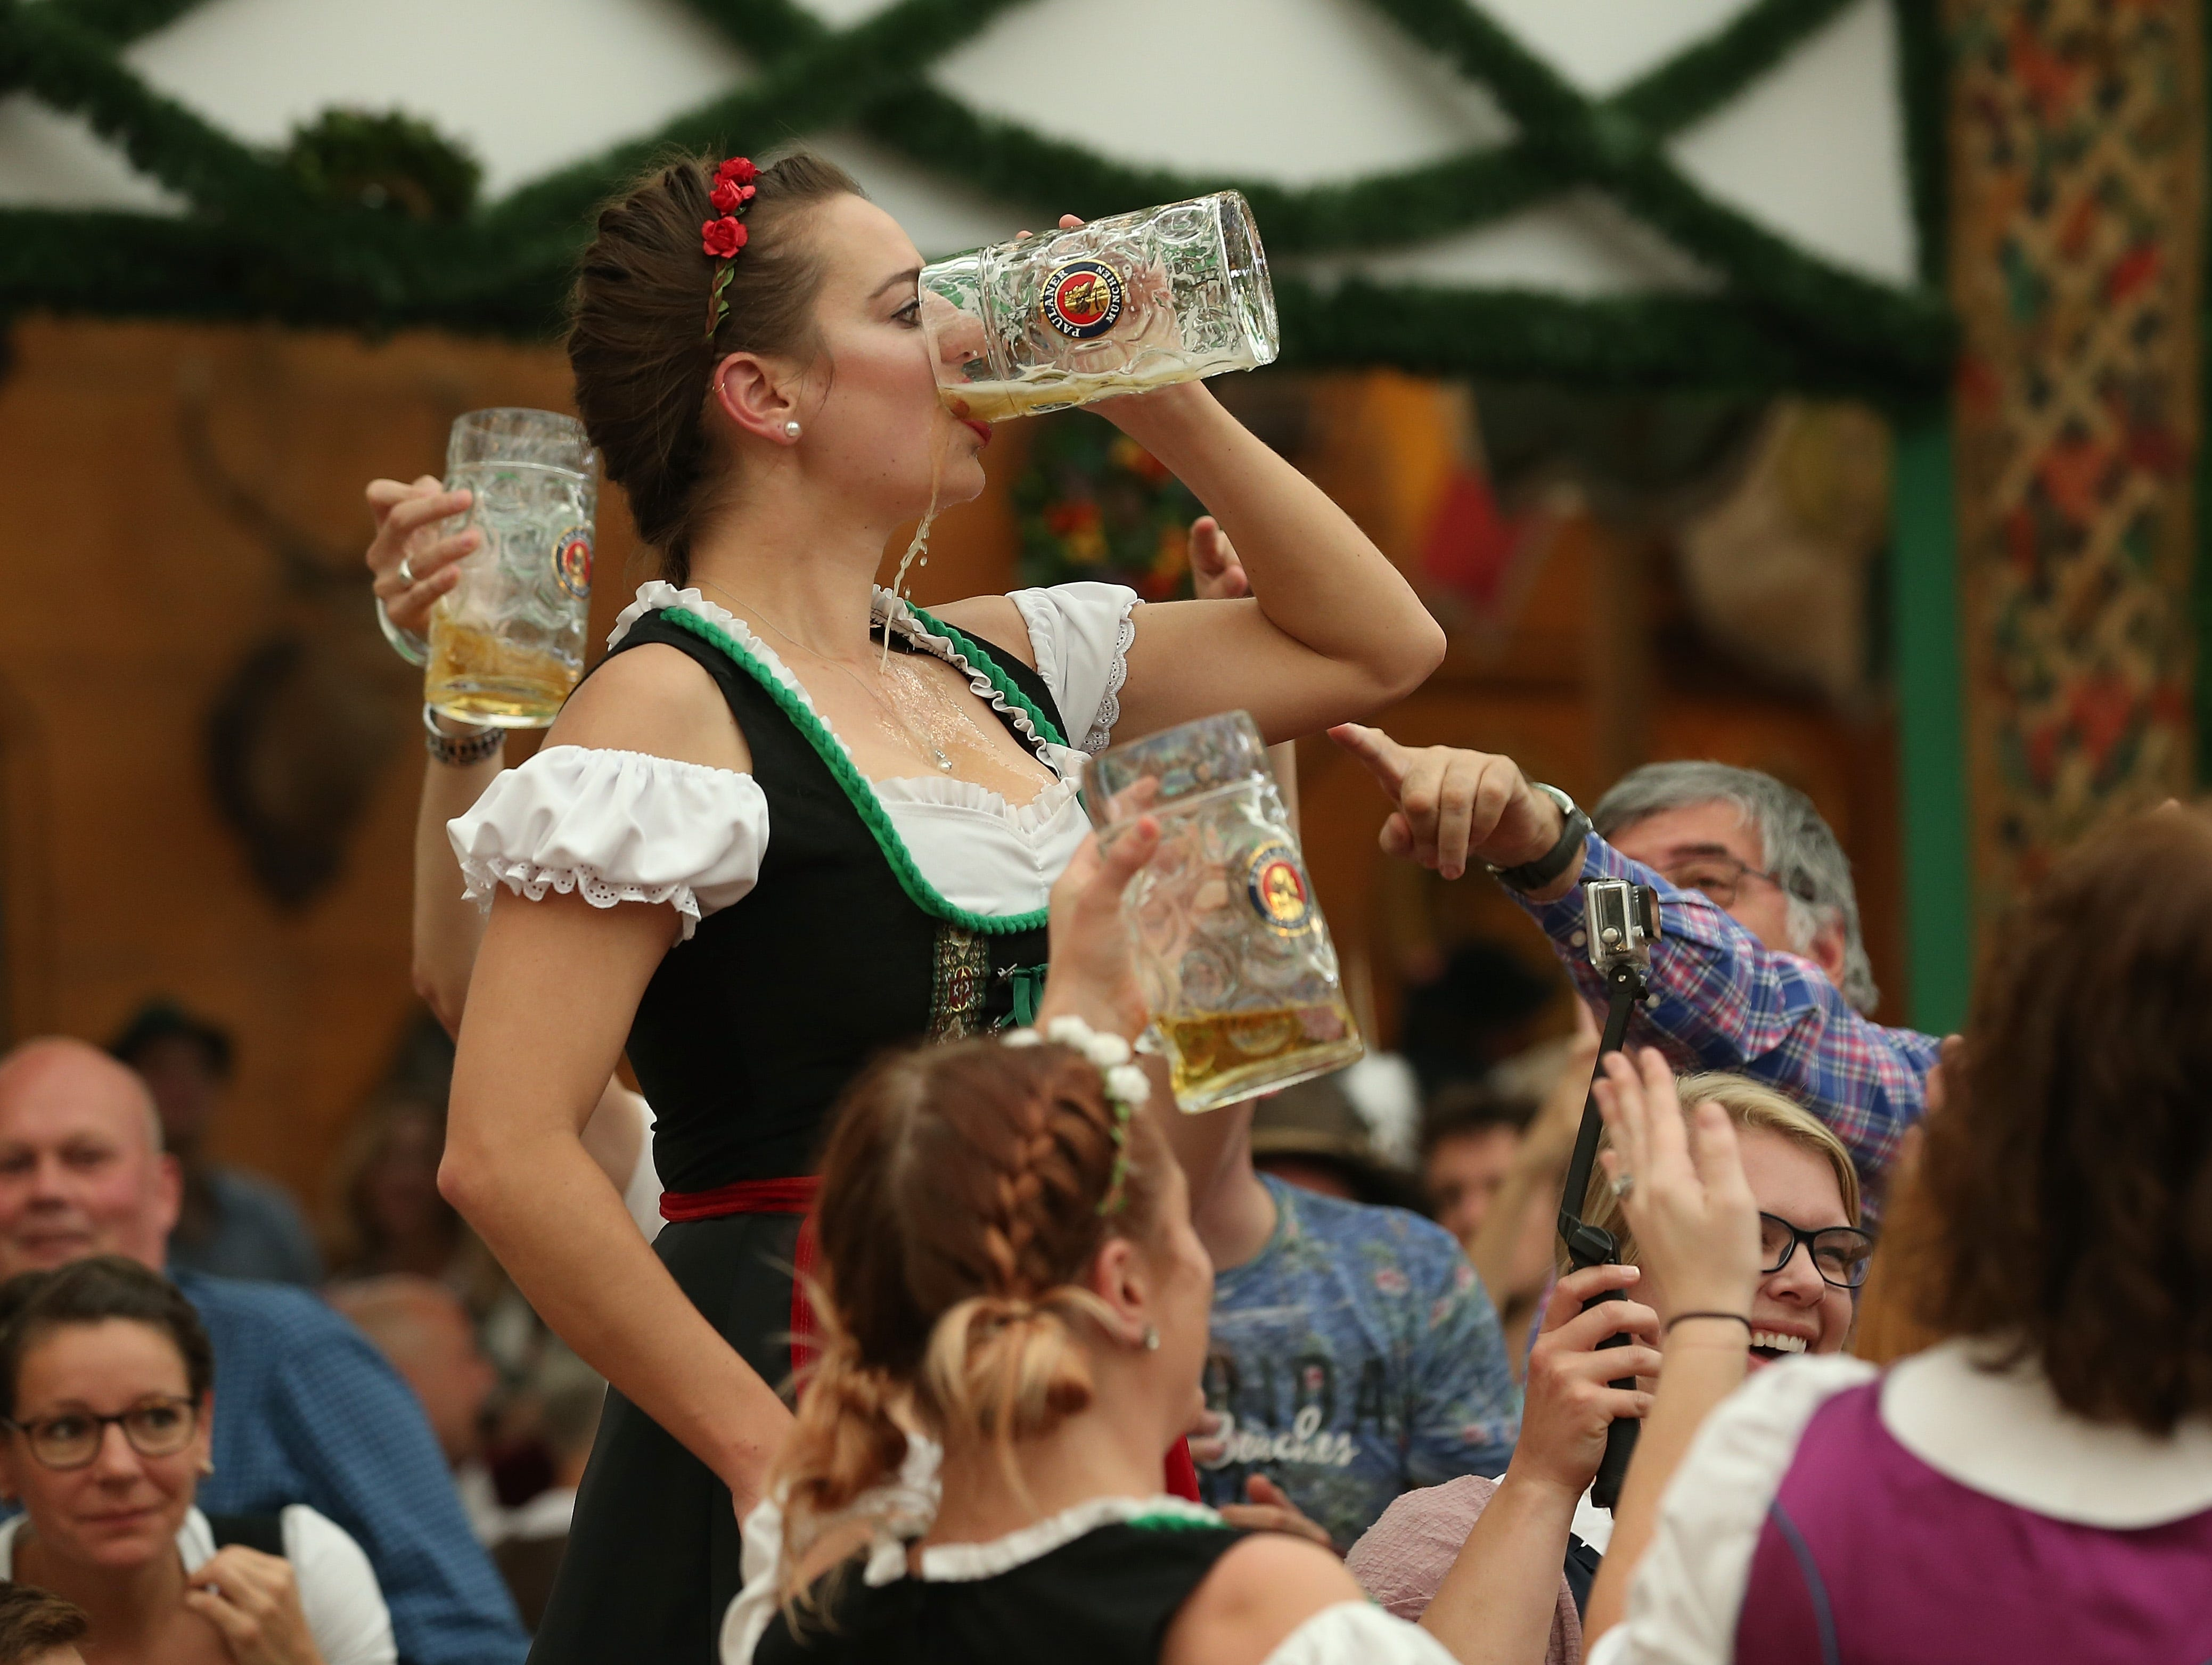 A female reveler from the USA downs her beer in the Armbrustschuetzenzelt tent on the second day of the 2018 Oktoberfest beer festival on Sept. 23, 2018 in Munich, Germany.